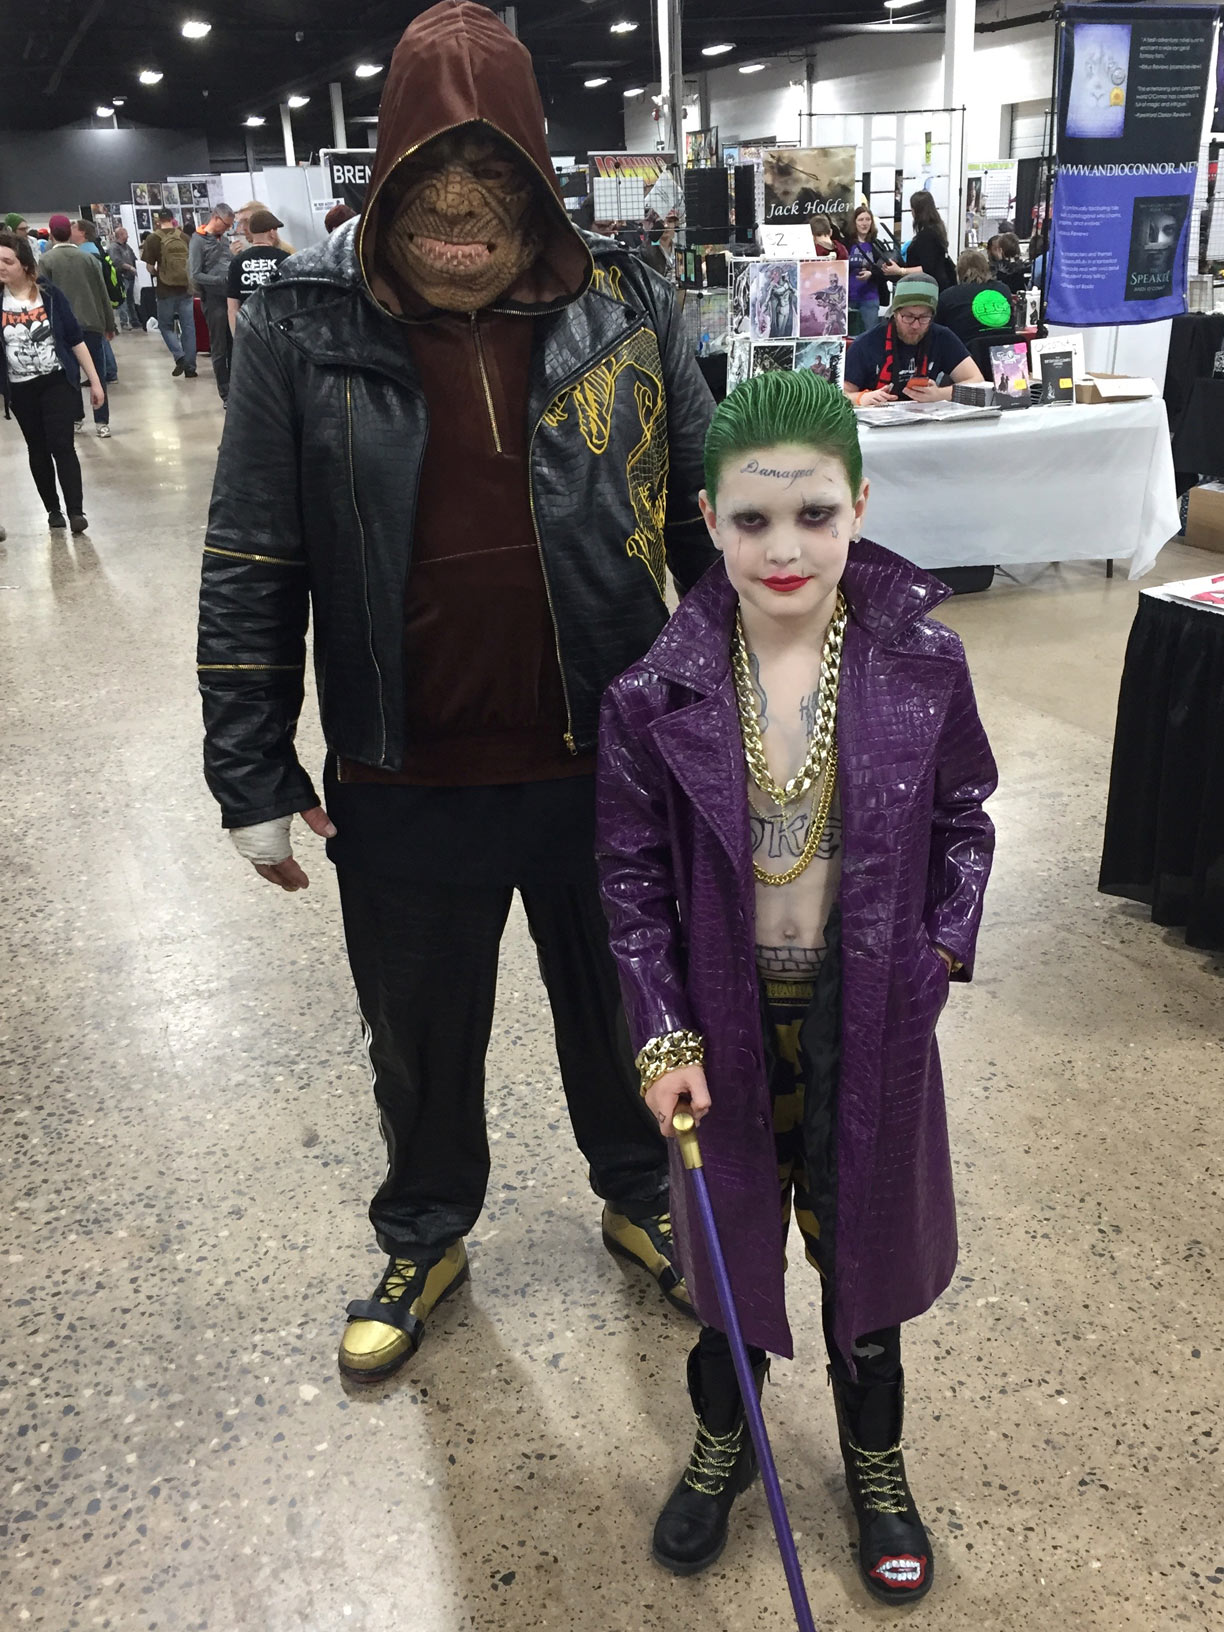 The Great Philadelphia Comic Con 2017 Cosplay Day 2